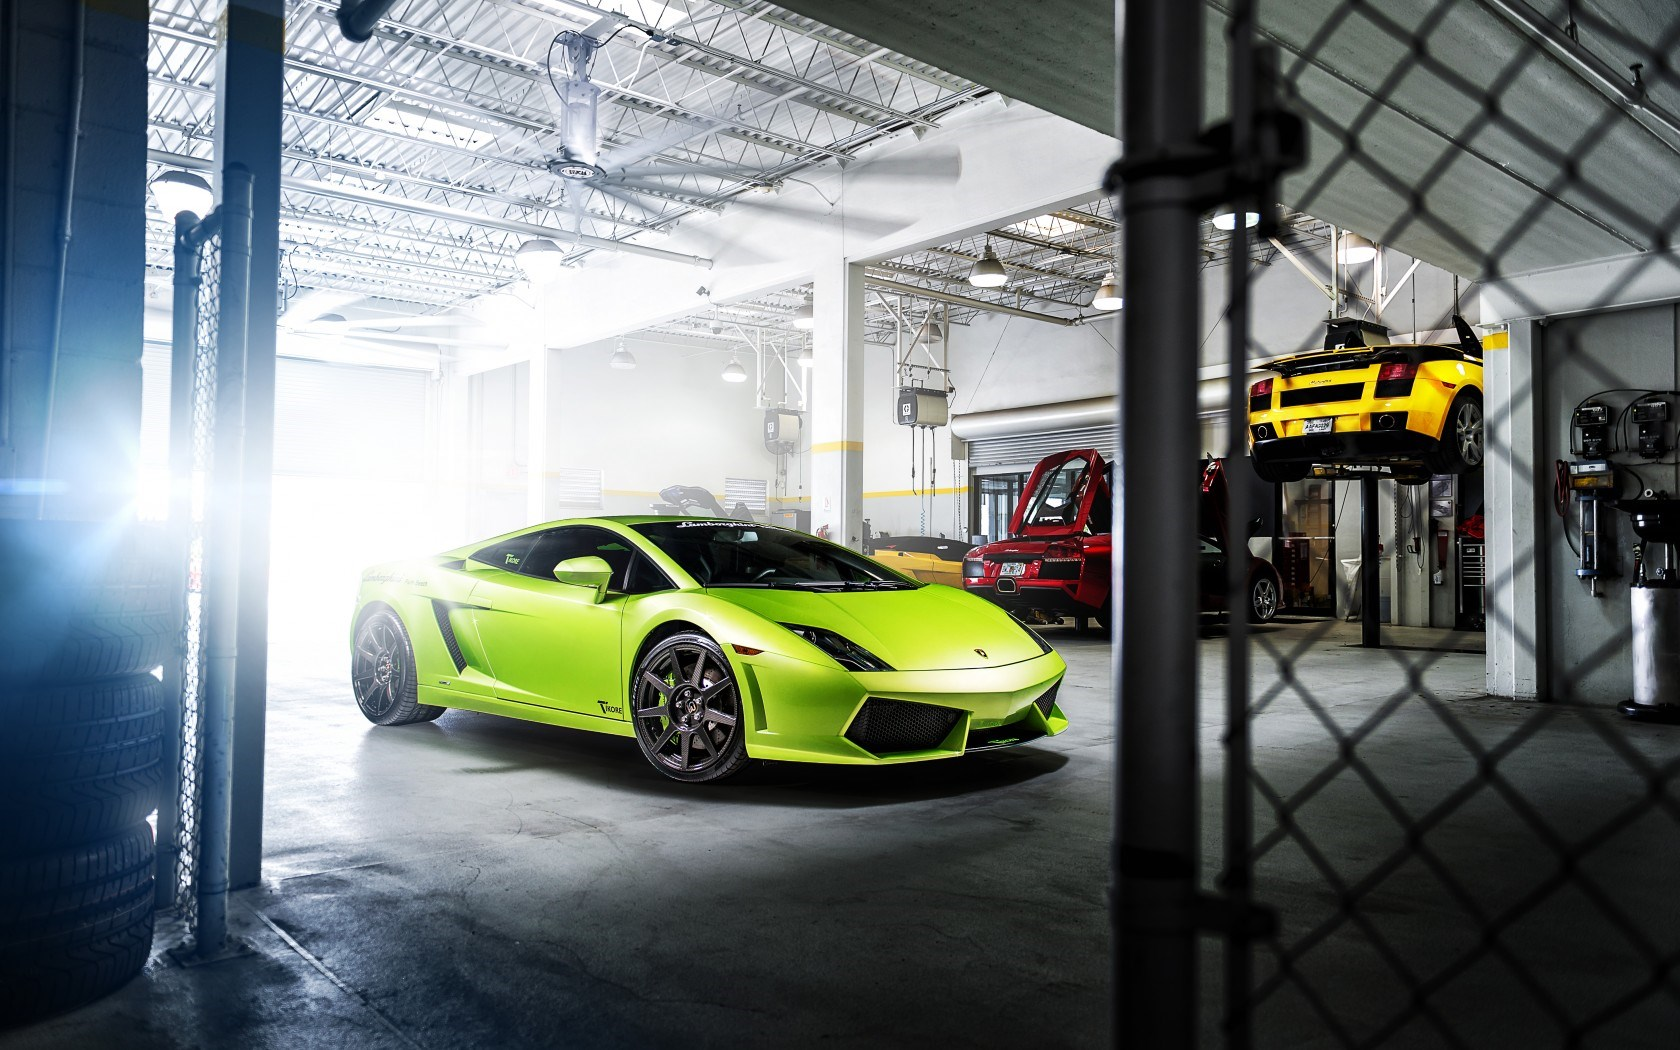 Lamborghini Gallardo Green Car Garage Wallpaper 1680x1050 17221